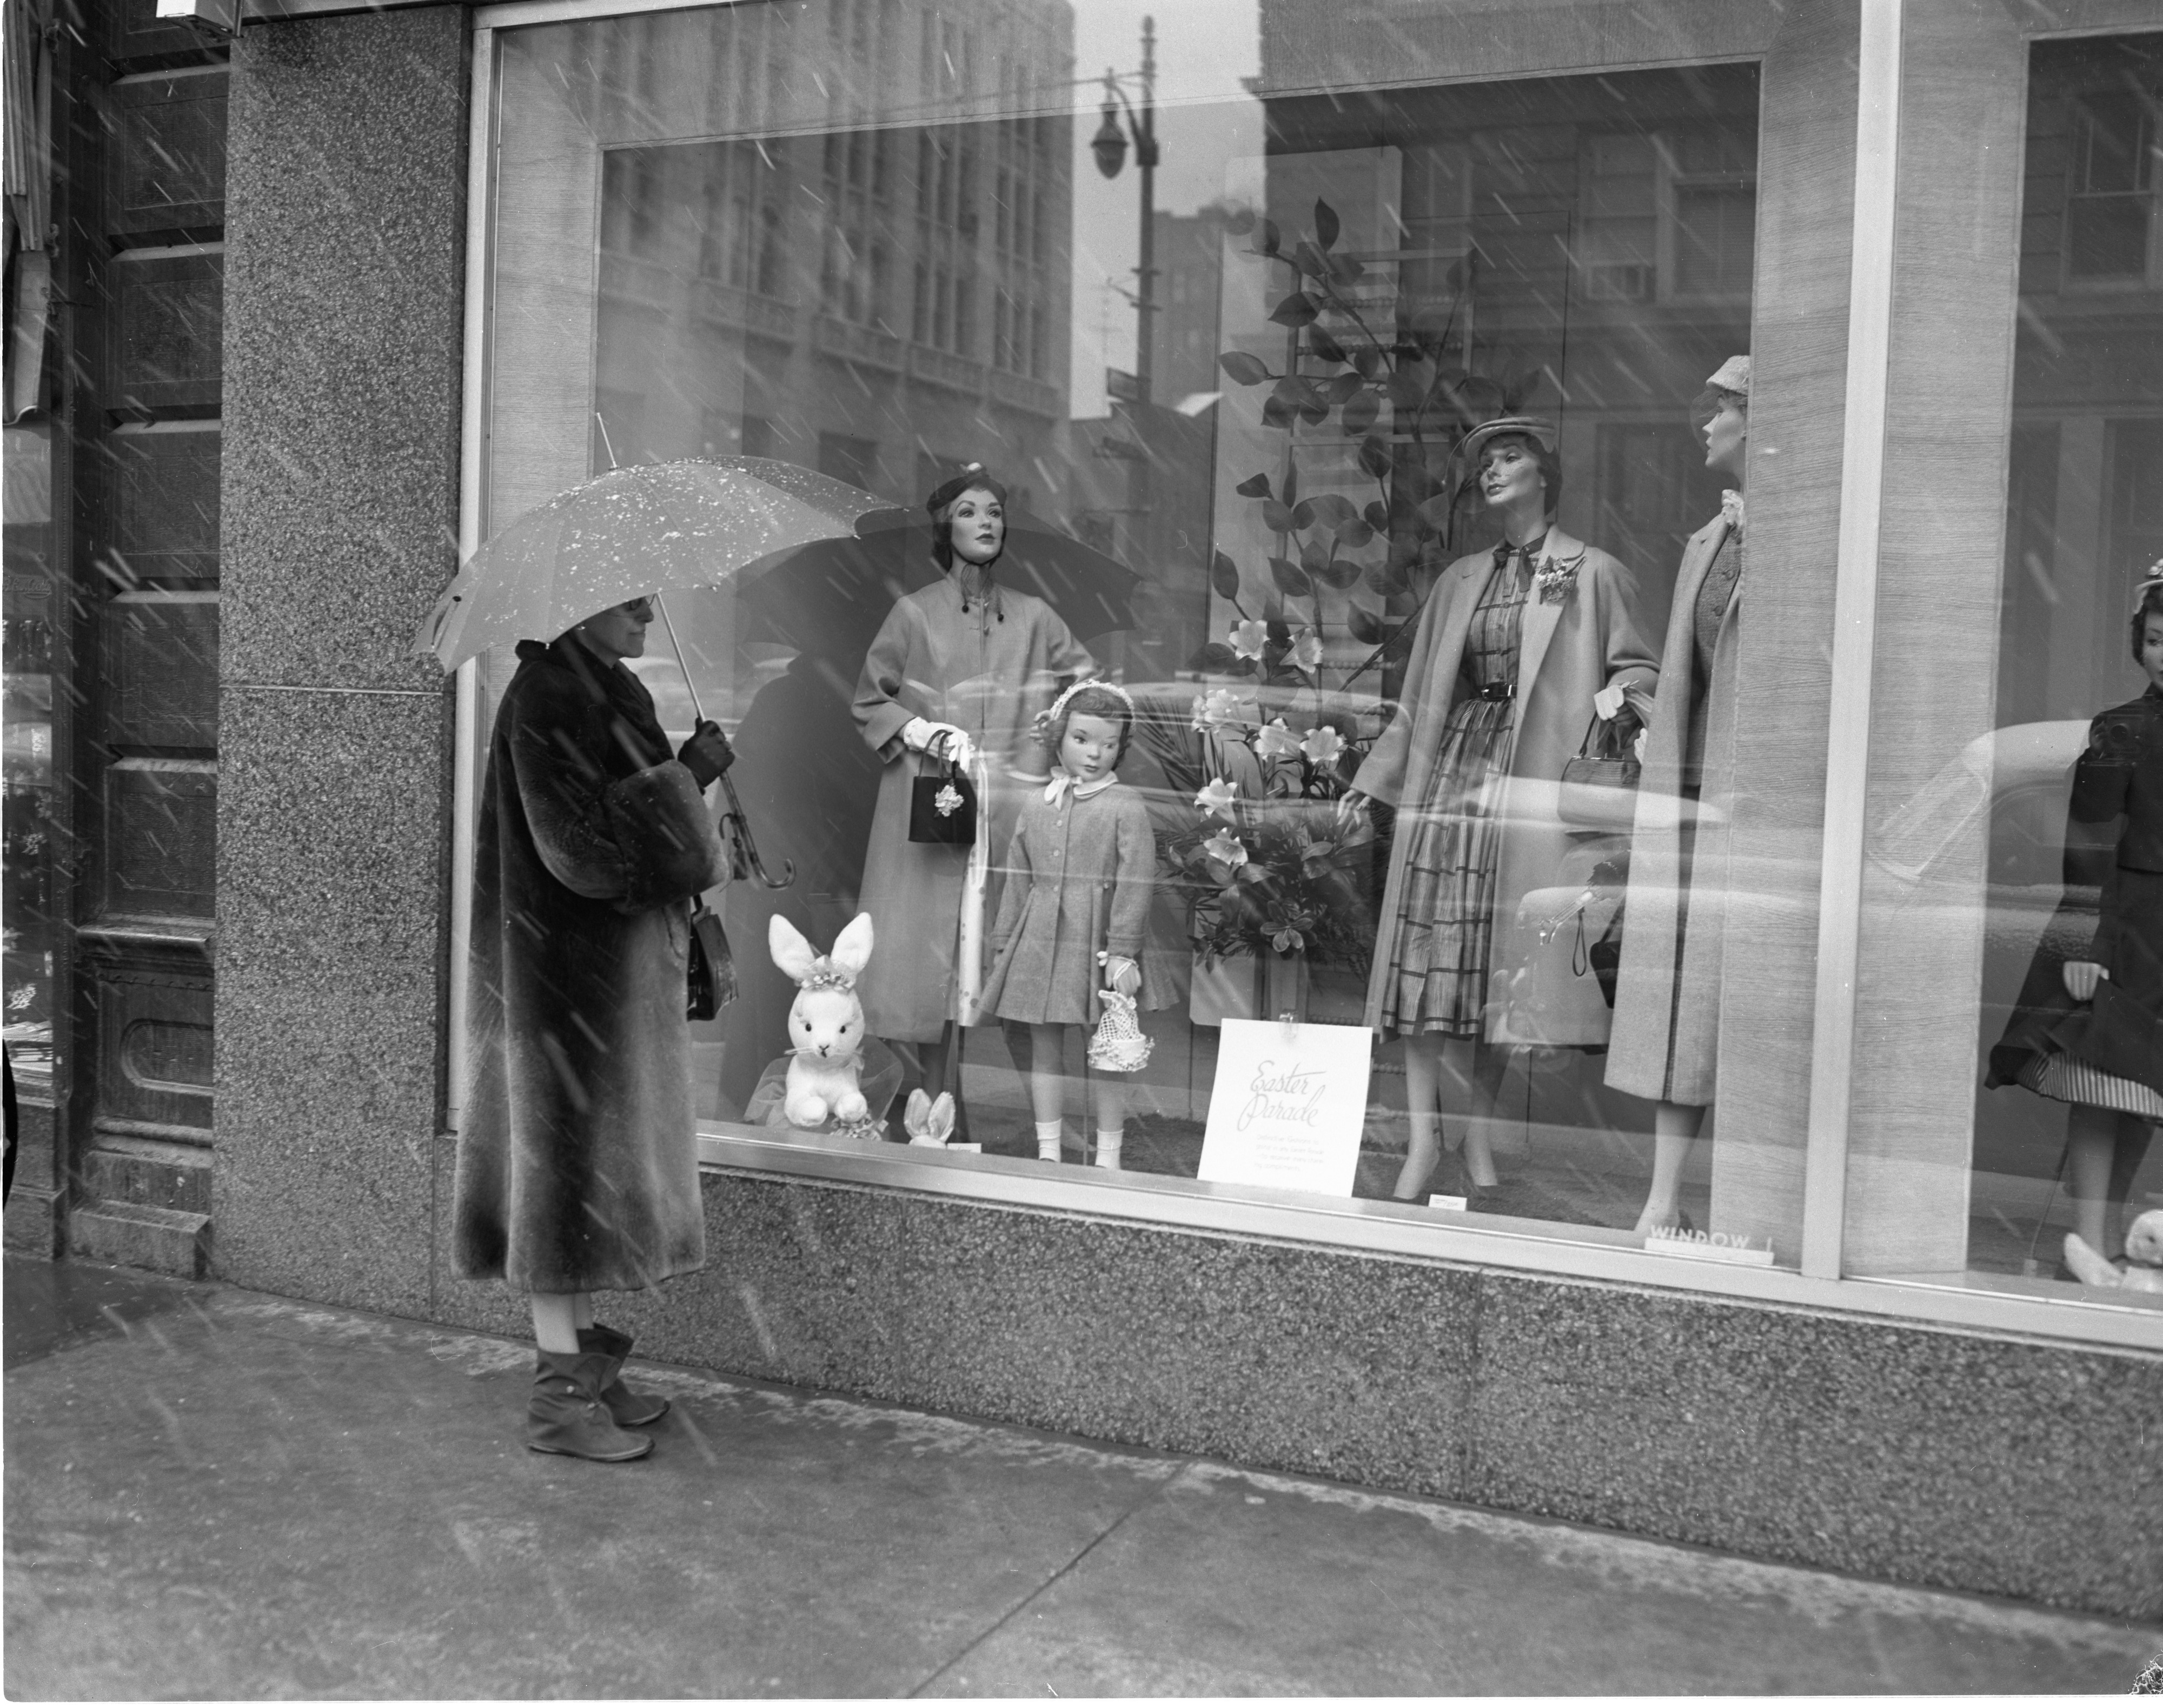 Window Shopper Outside Of Goodyear's Department Store, March 1956 image